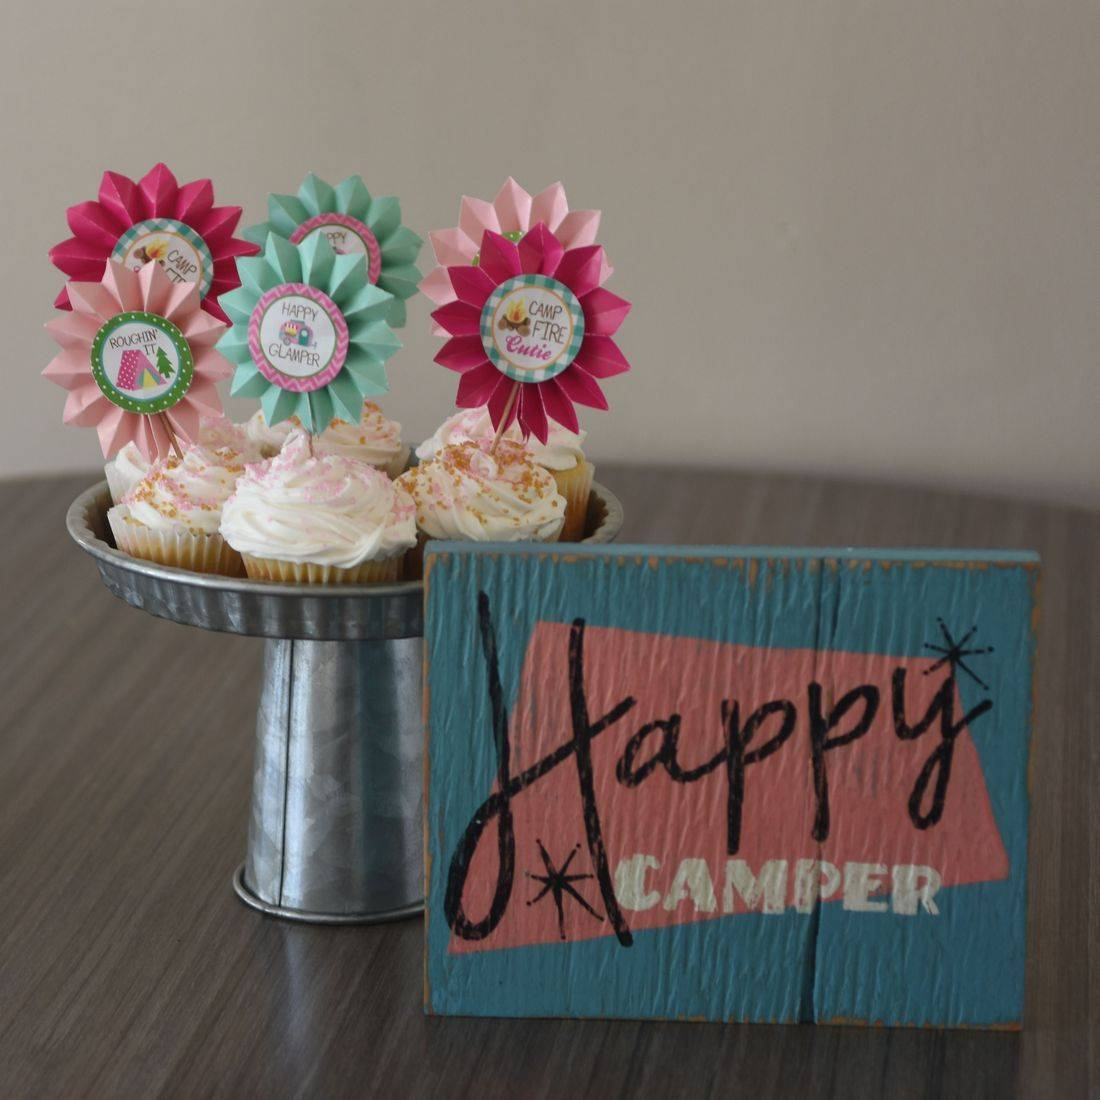 Kids party rentals, teepee rentals, party rentals, kids party planner, Cupcakes, bakery, glamping, Happy Campers, Happy Glampers, birthday, teepees, indoor, campsite, campsites,